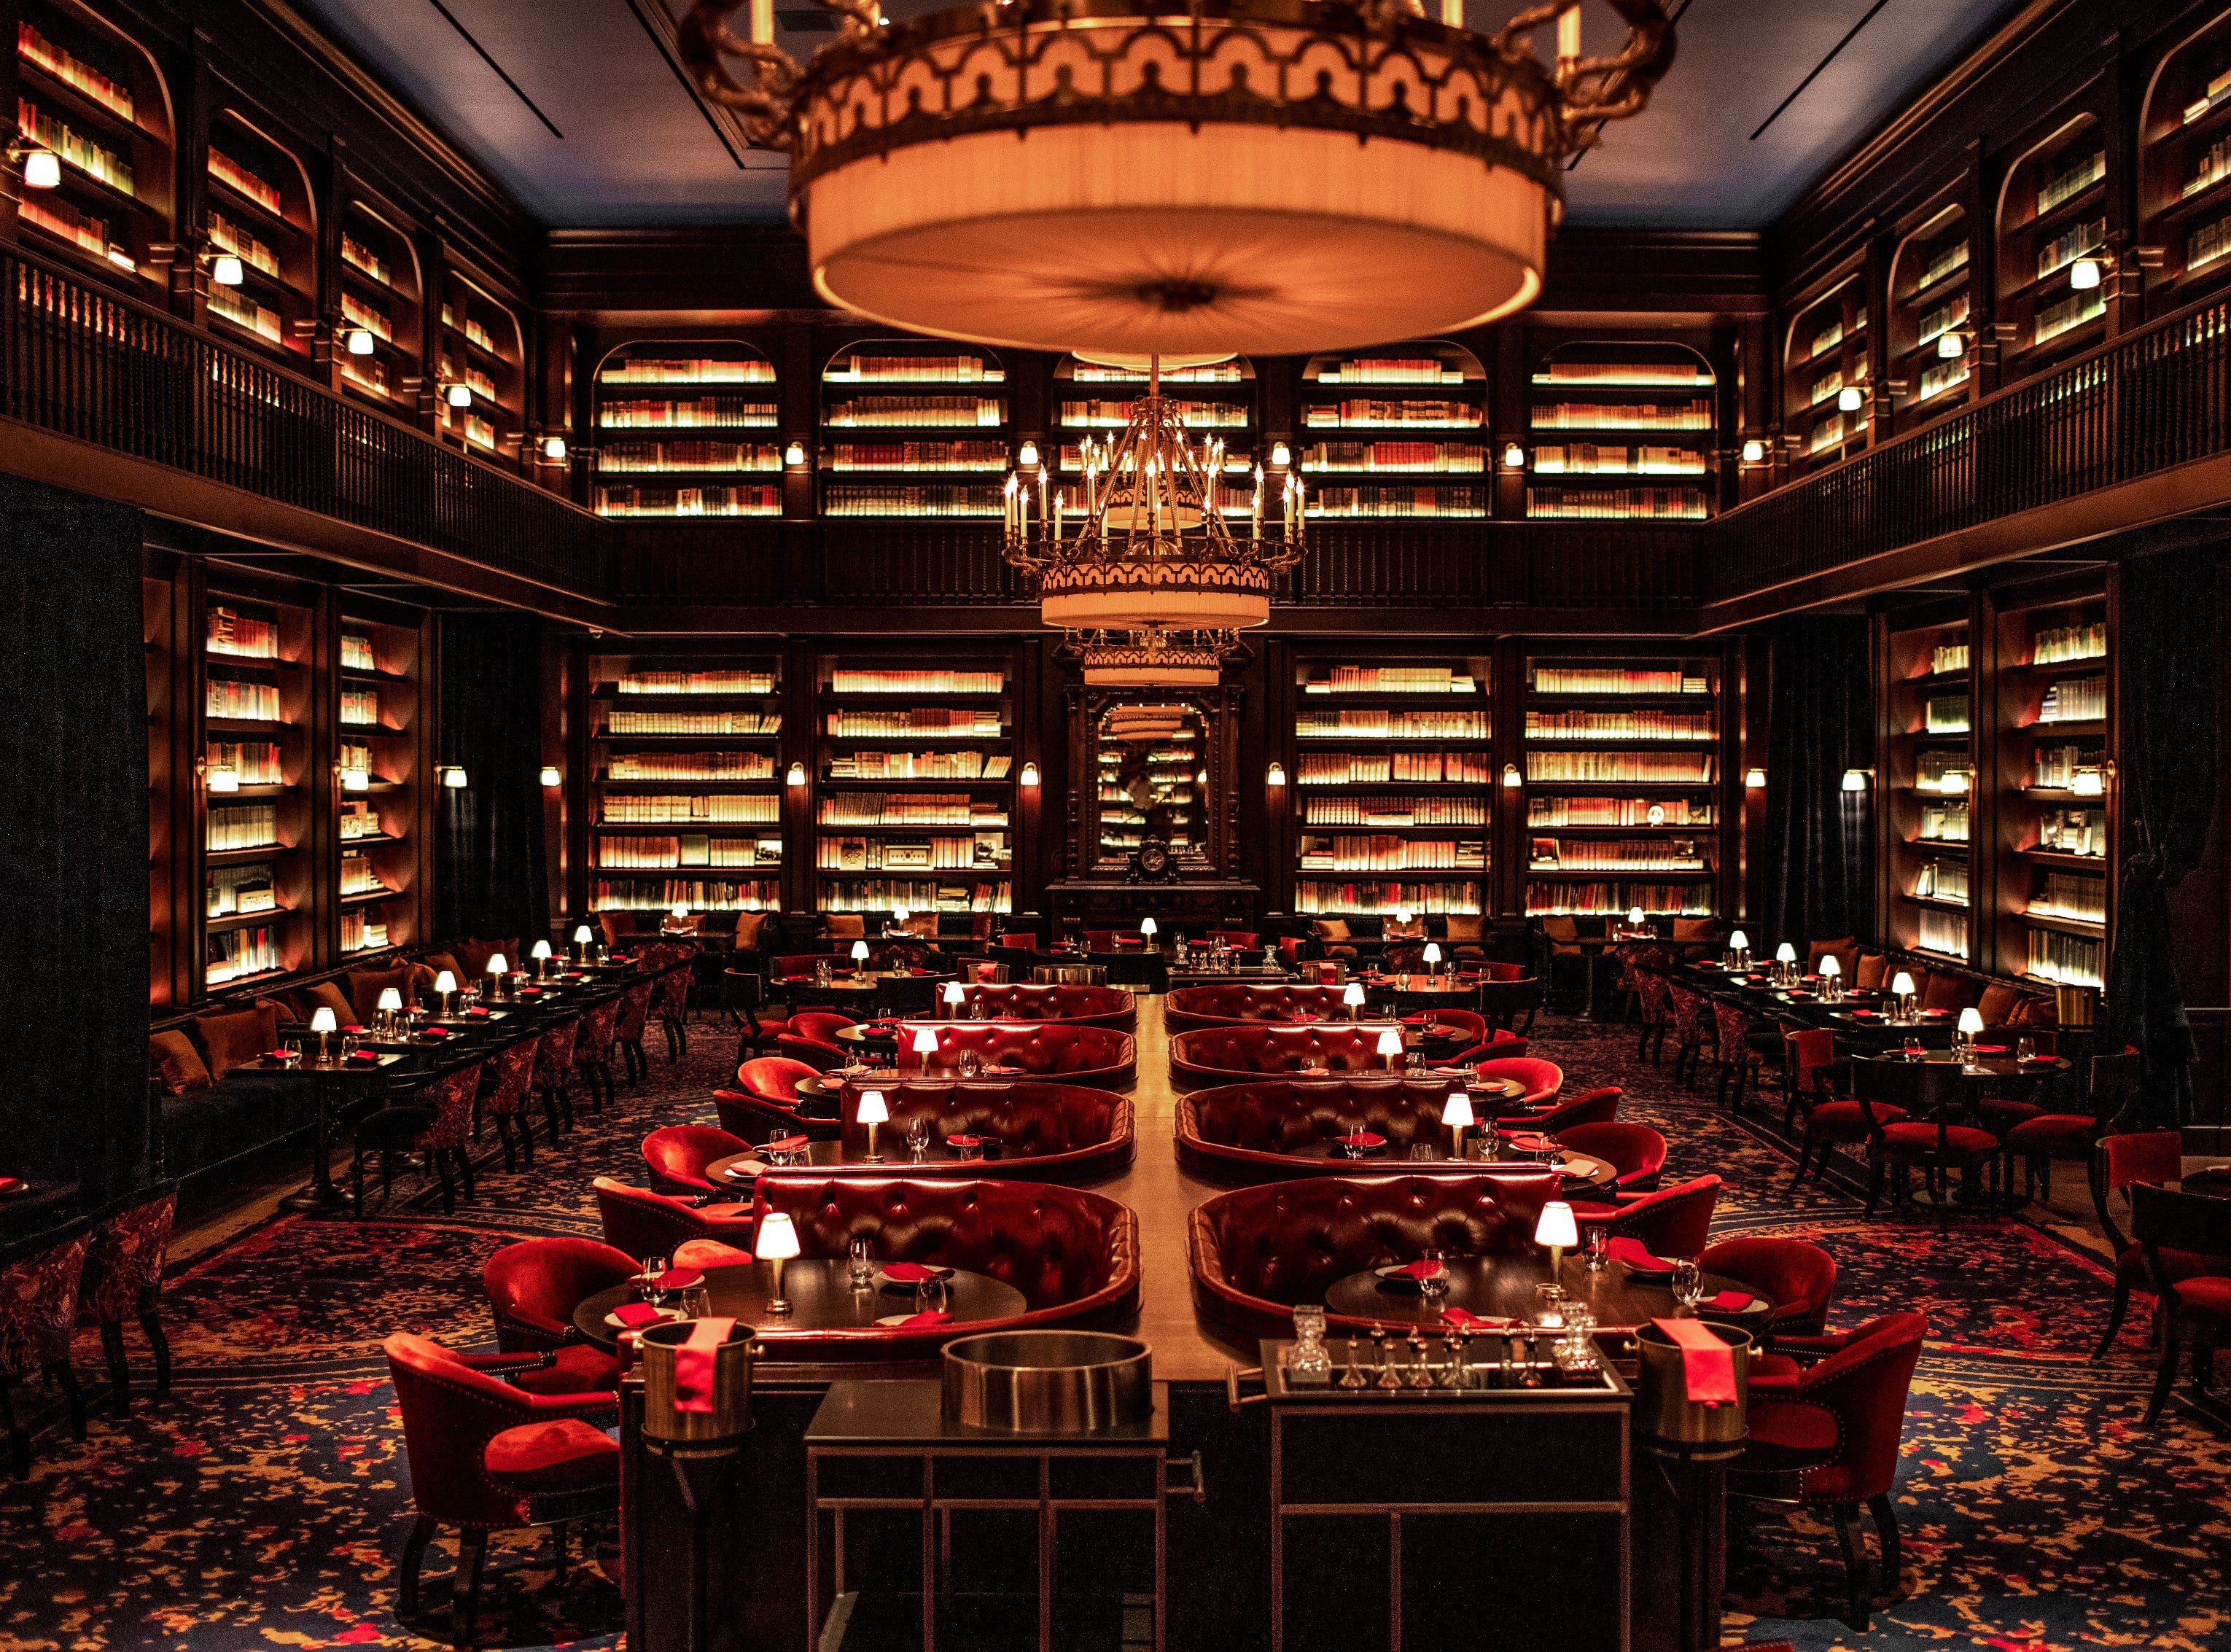 NOMAD RESTAURANT AND BAR in NoMad Las Vegas. The soaring restaurant draws inspiration from the NoMad Library in New York (and from grand public and private libraries of the 19th and early 20th centuries).